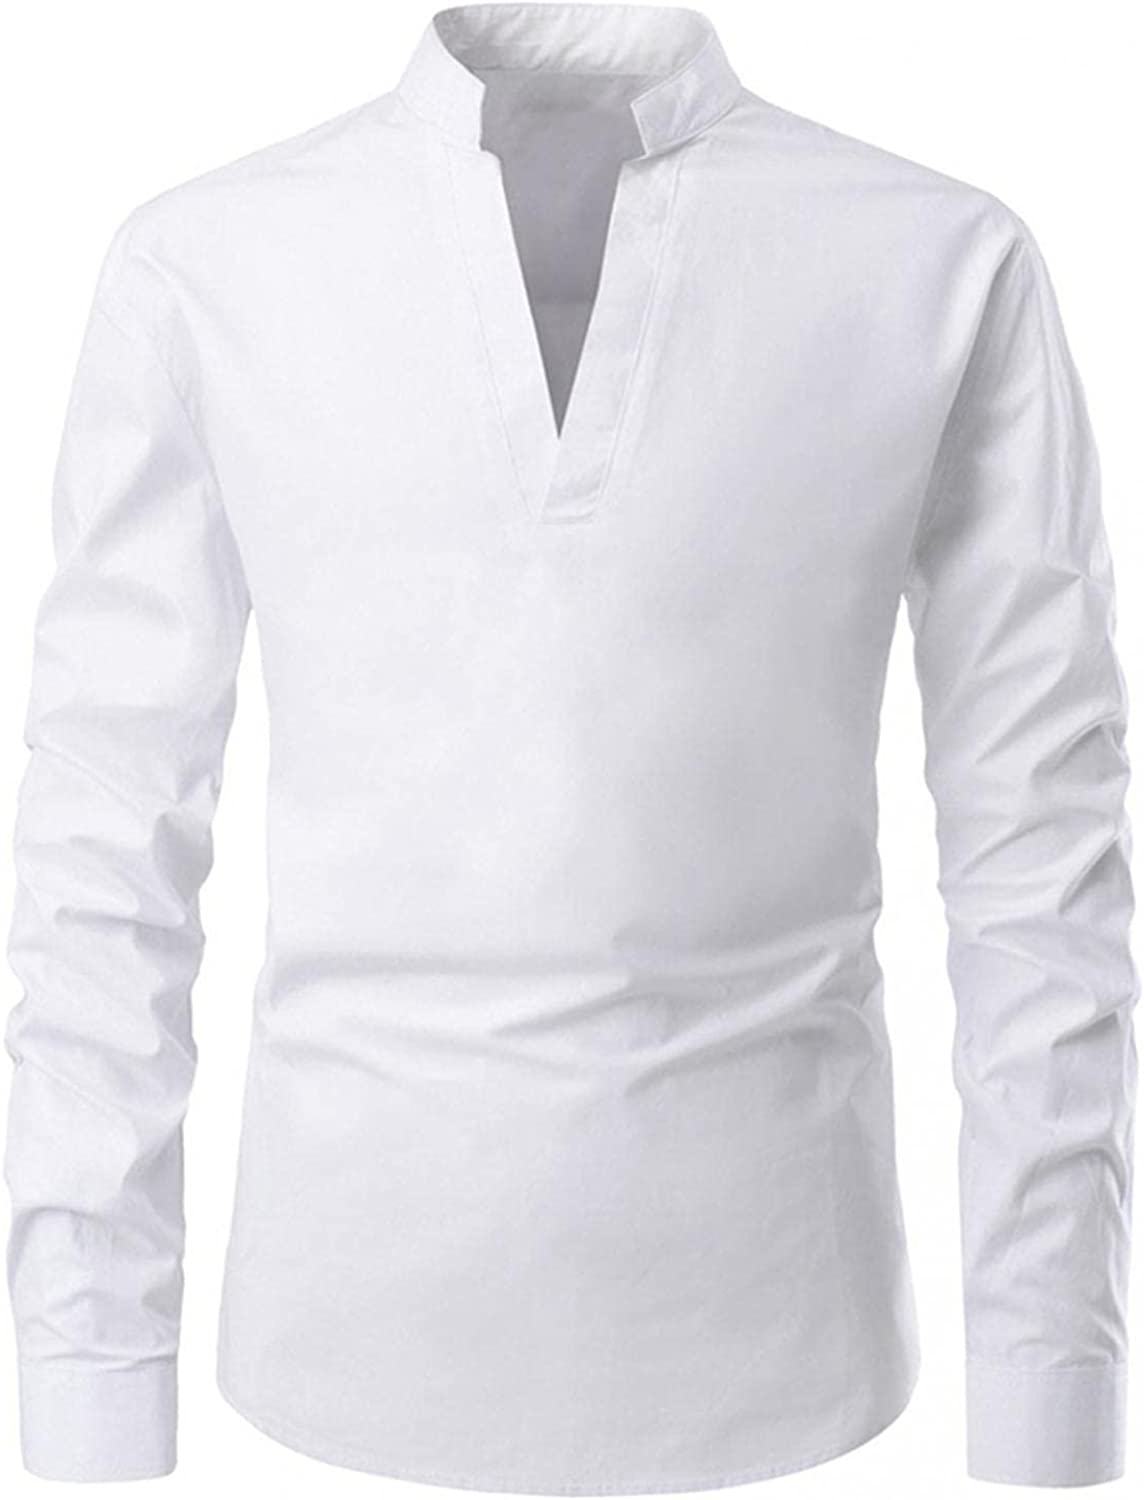 FUNEY Mens V Neck T Shirts Retro Long Sleeve Stand-up Collar Solid Color Cotton Yoga Tops Fashion Gothic Henley Shirts